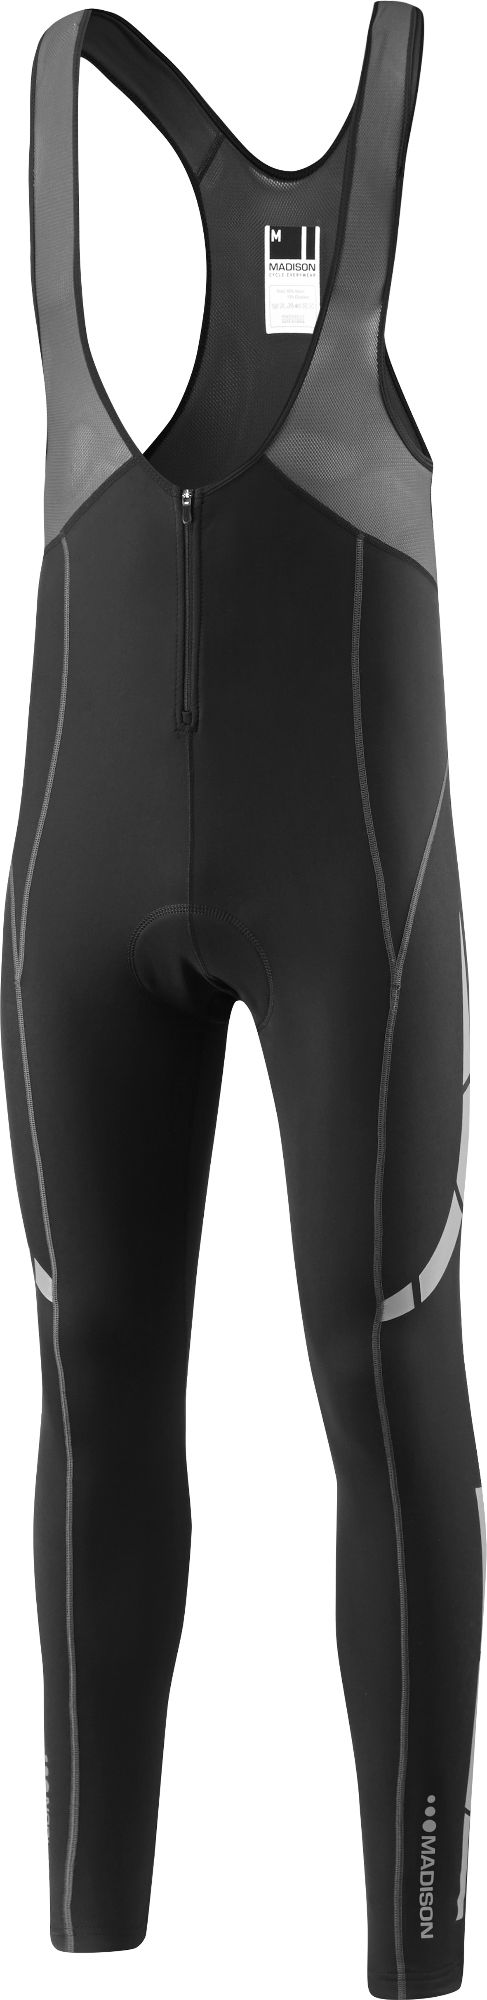 Madison Stellar Mens Bib Tights with Pad